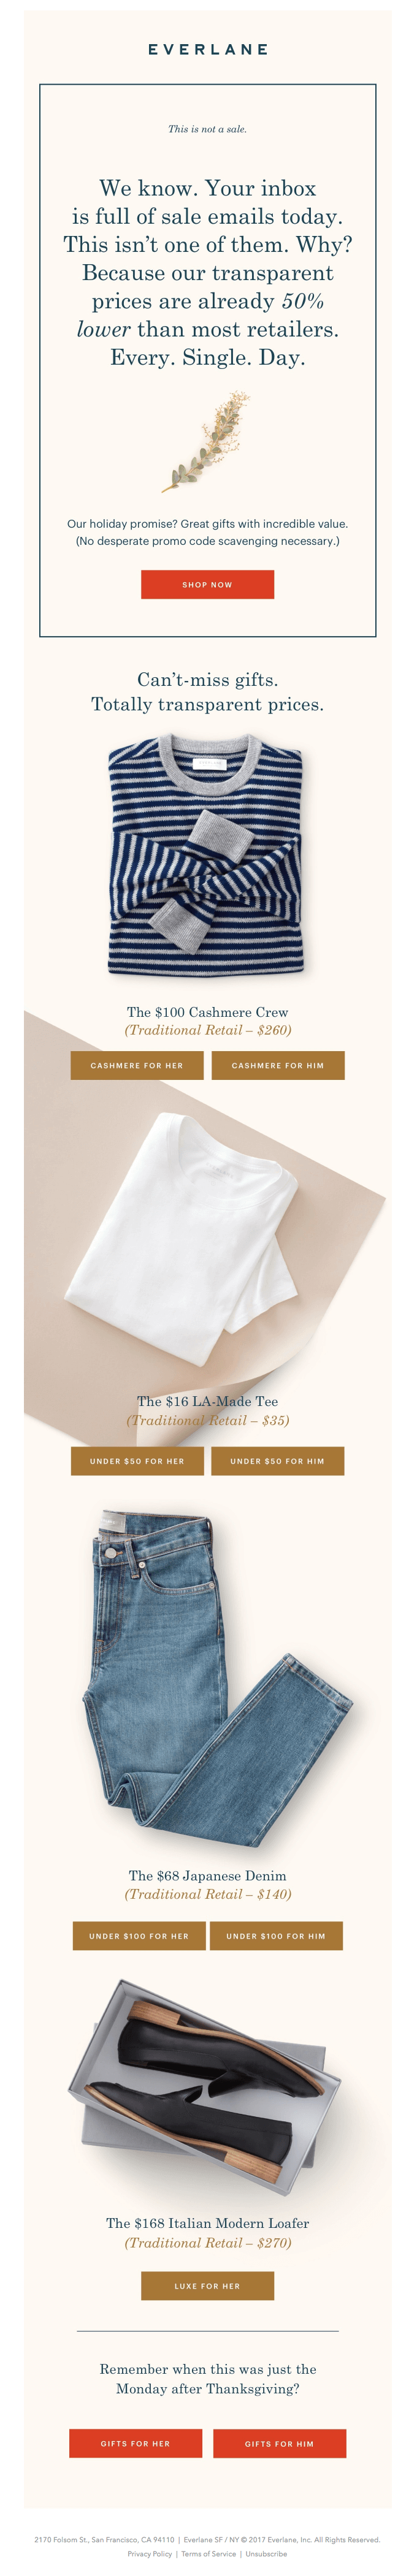 Everlane-Email